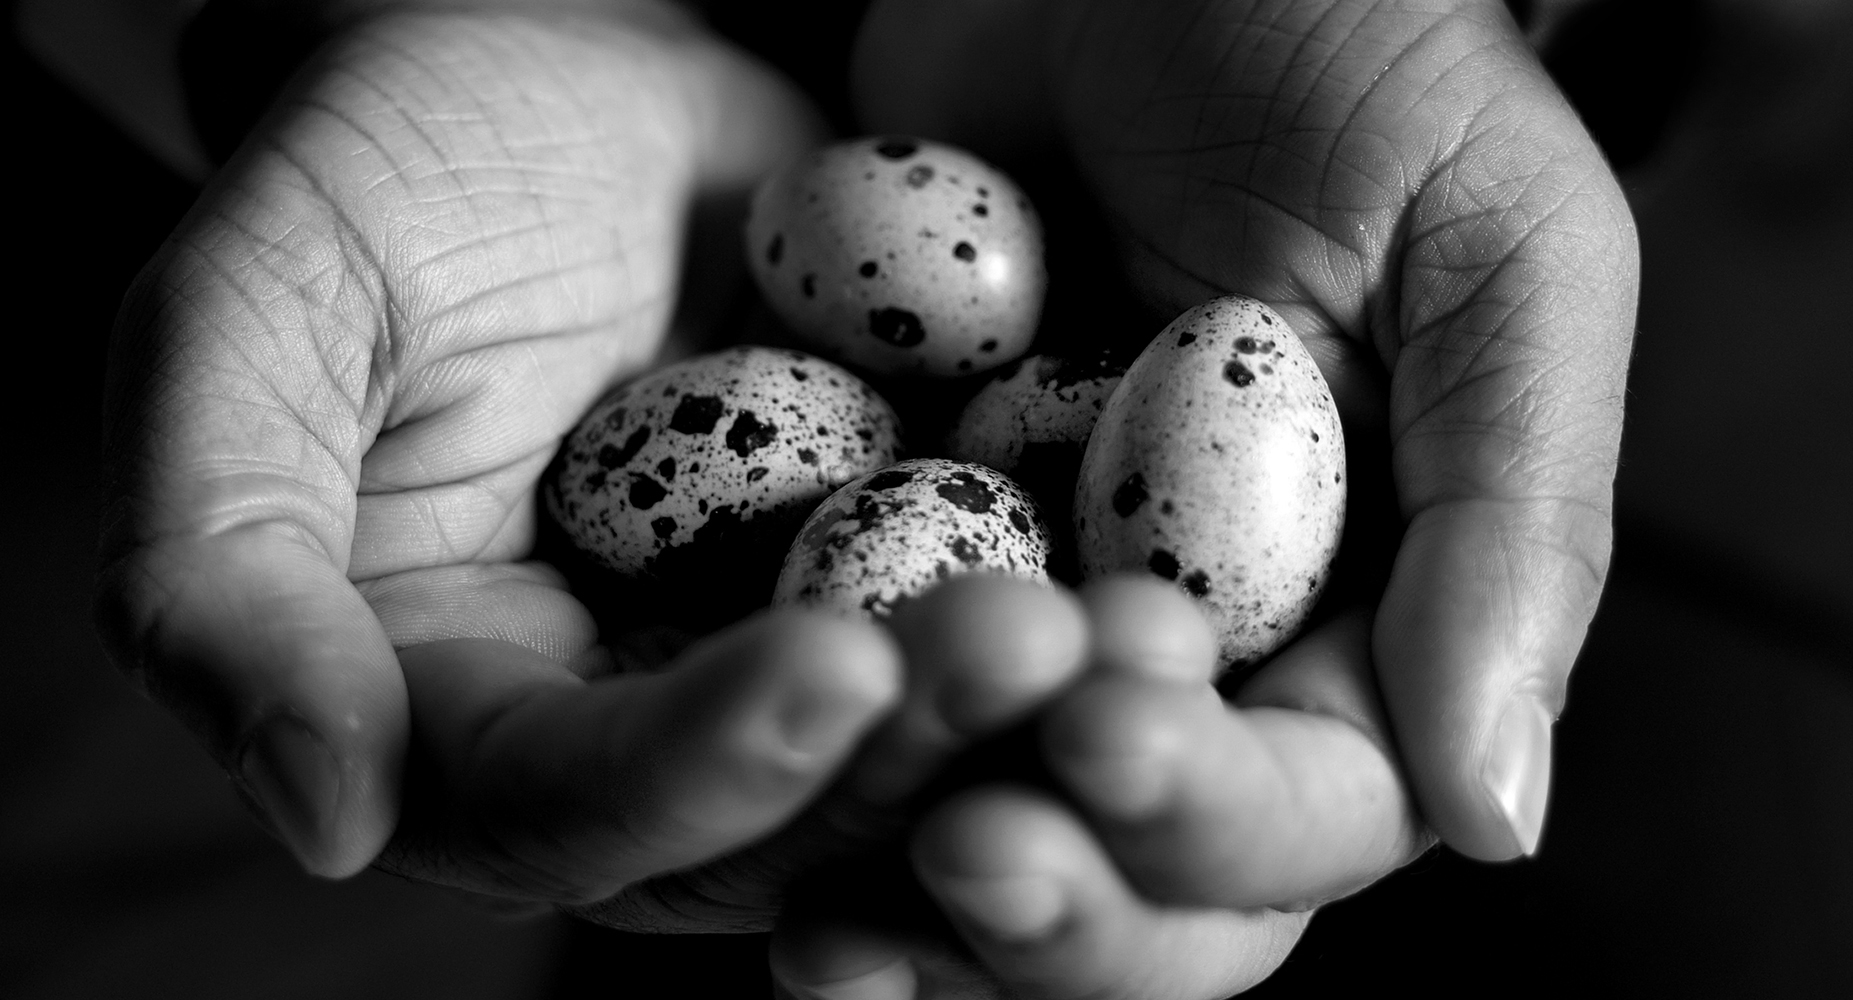 quails eggs in hands